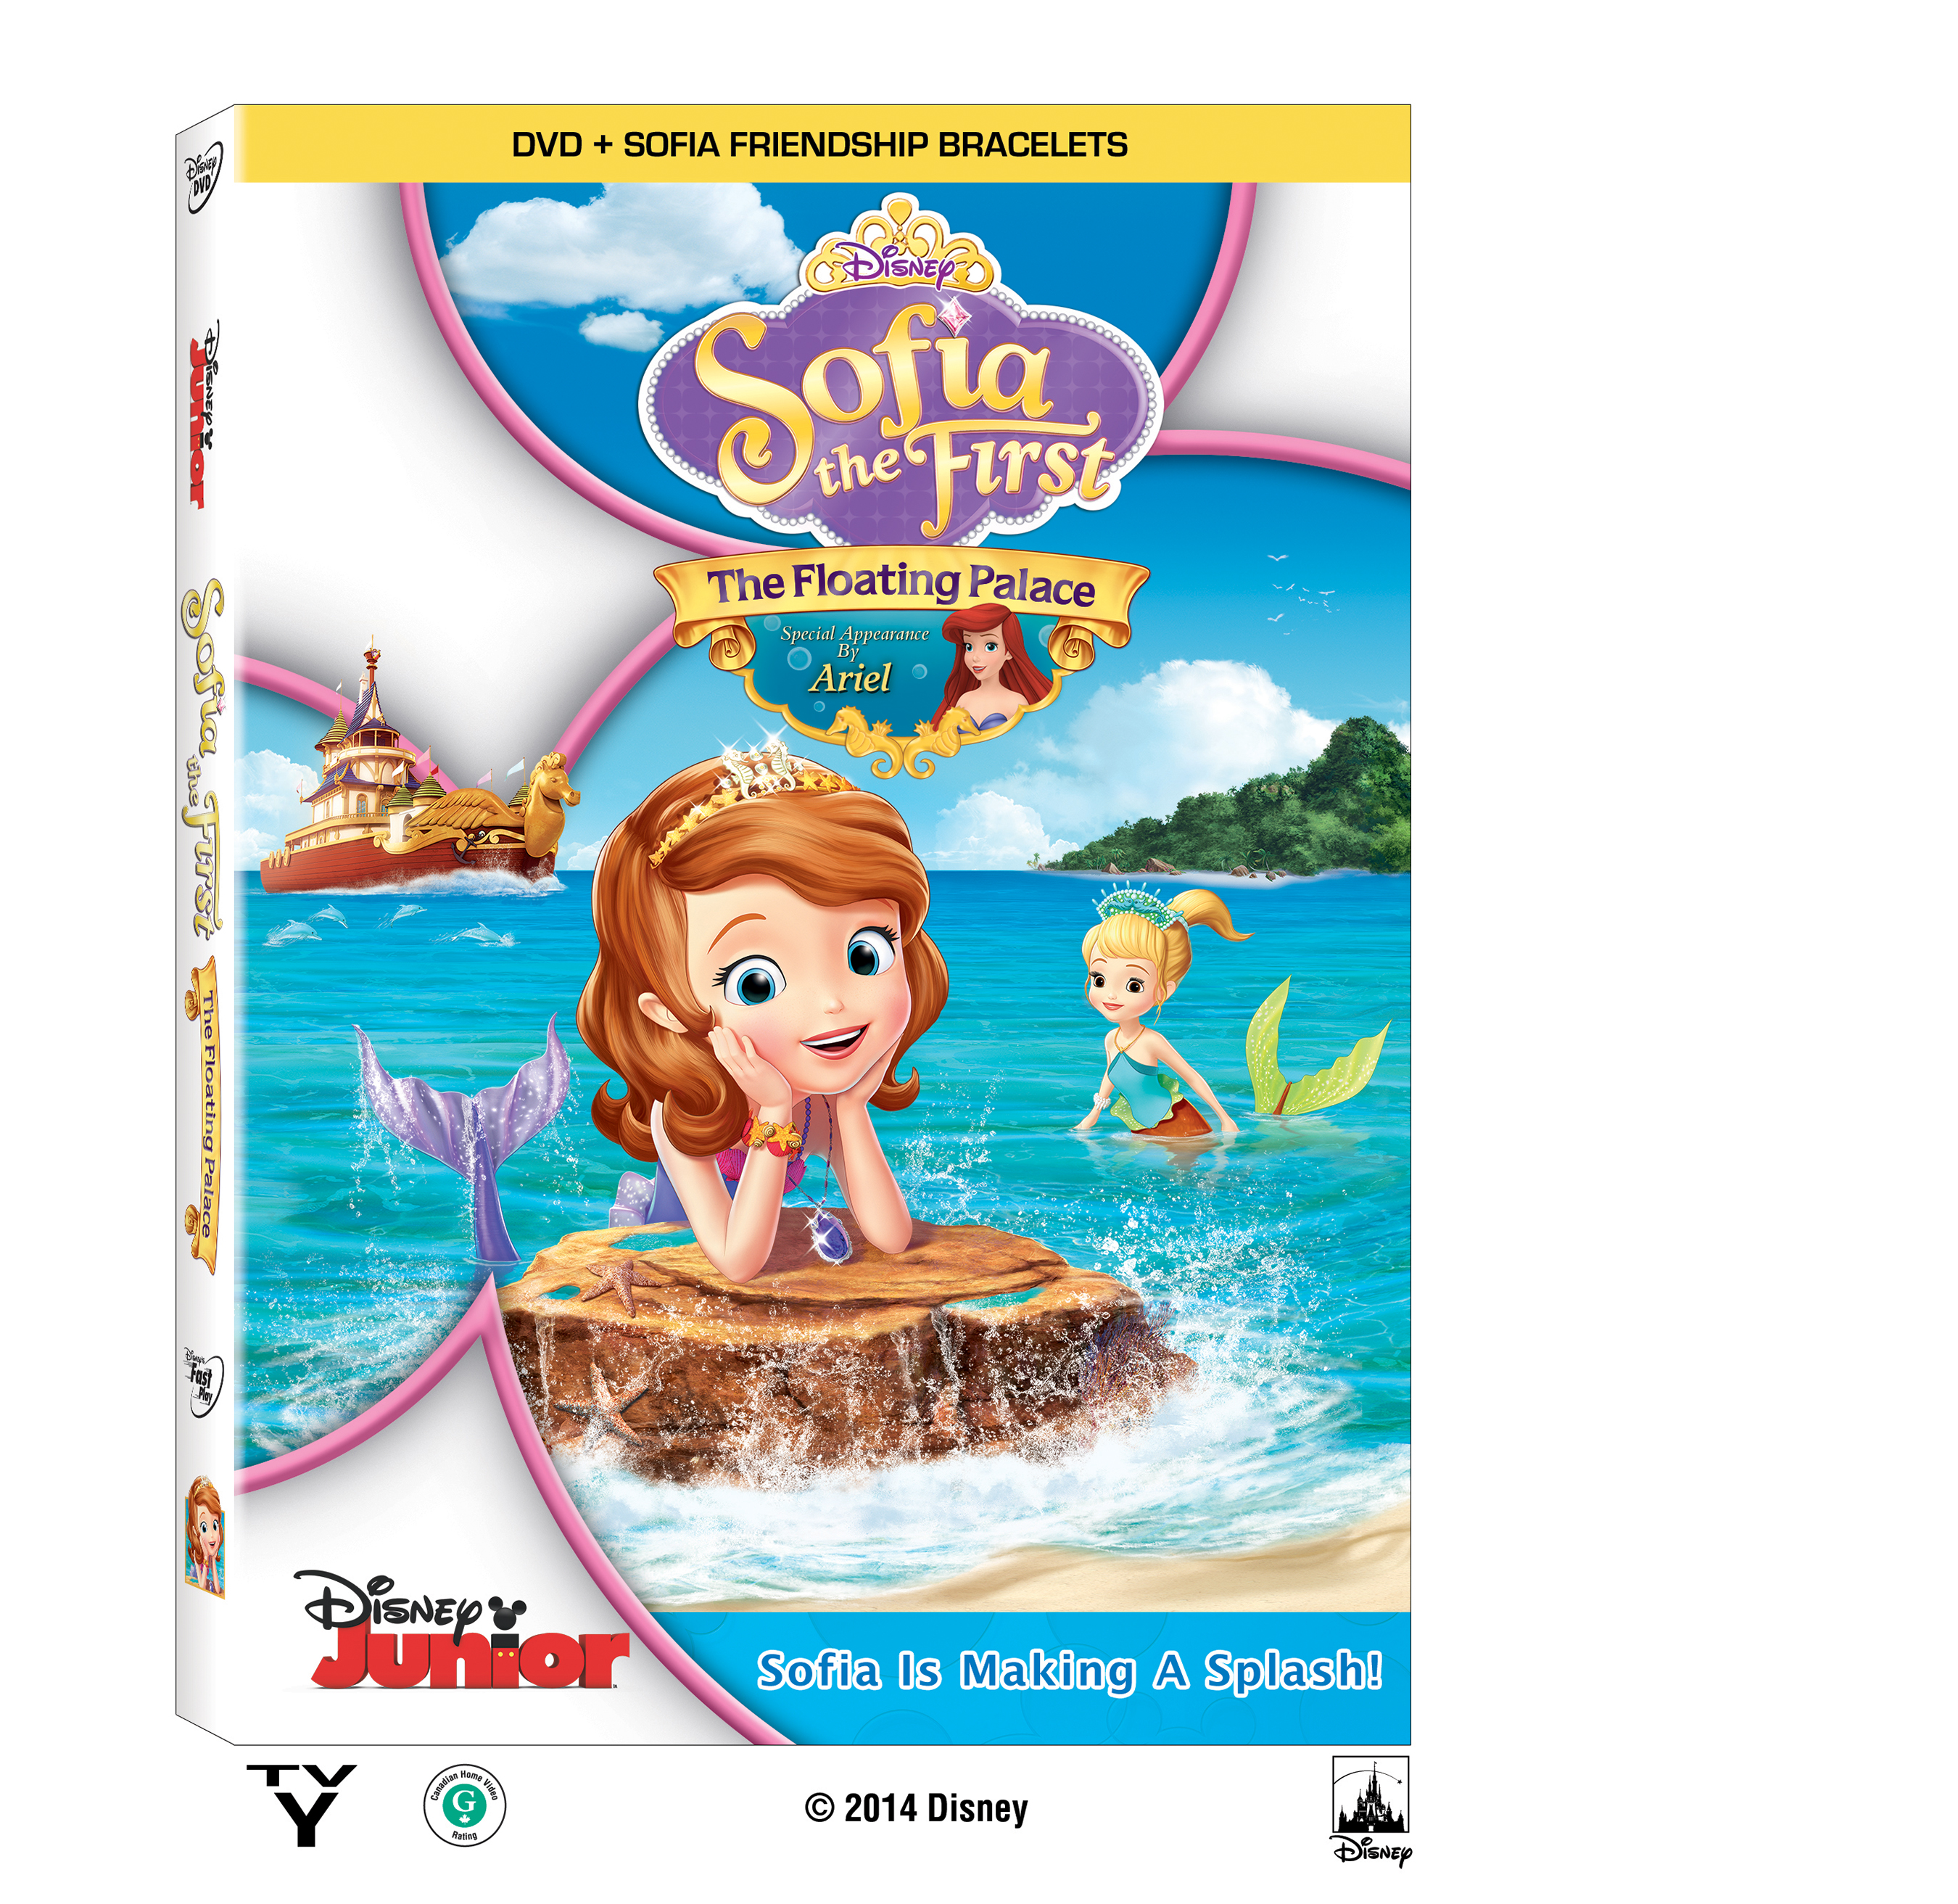 Sofia the First: The Floating Palace DVD featuring Ariel the Mermaid and BONUS Friendship Bracelets! #disney